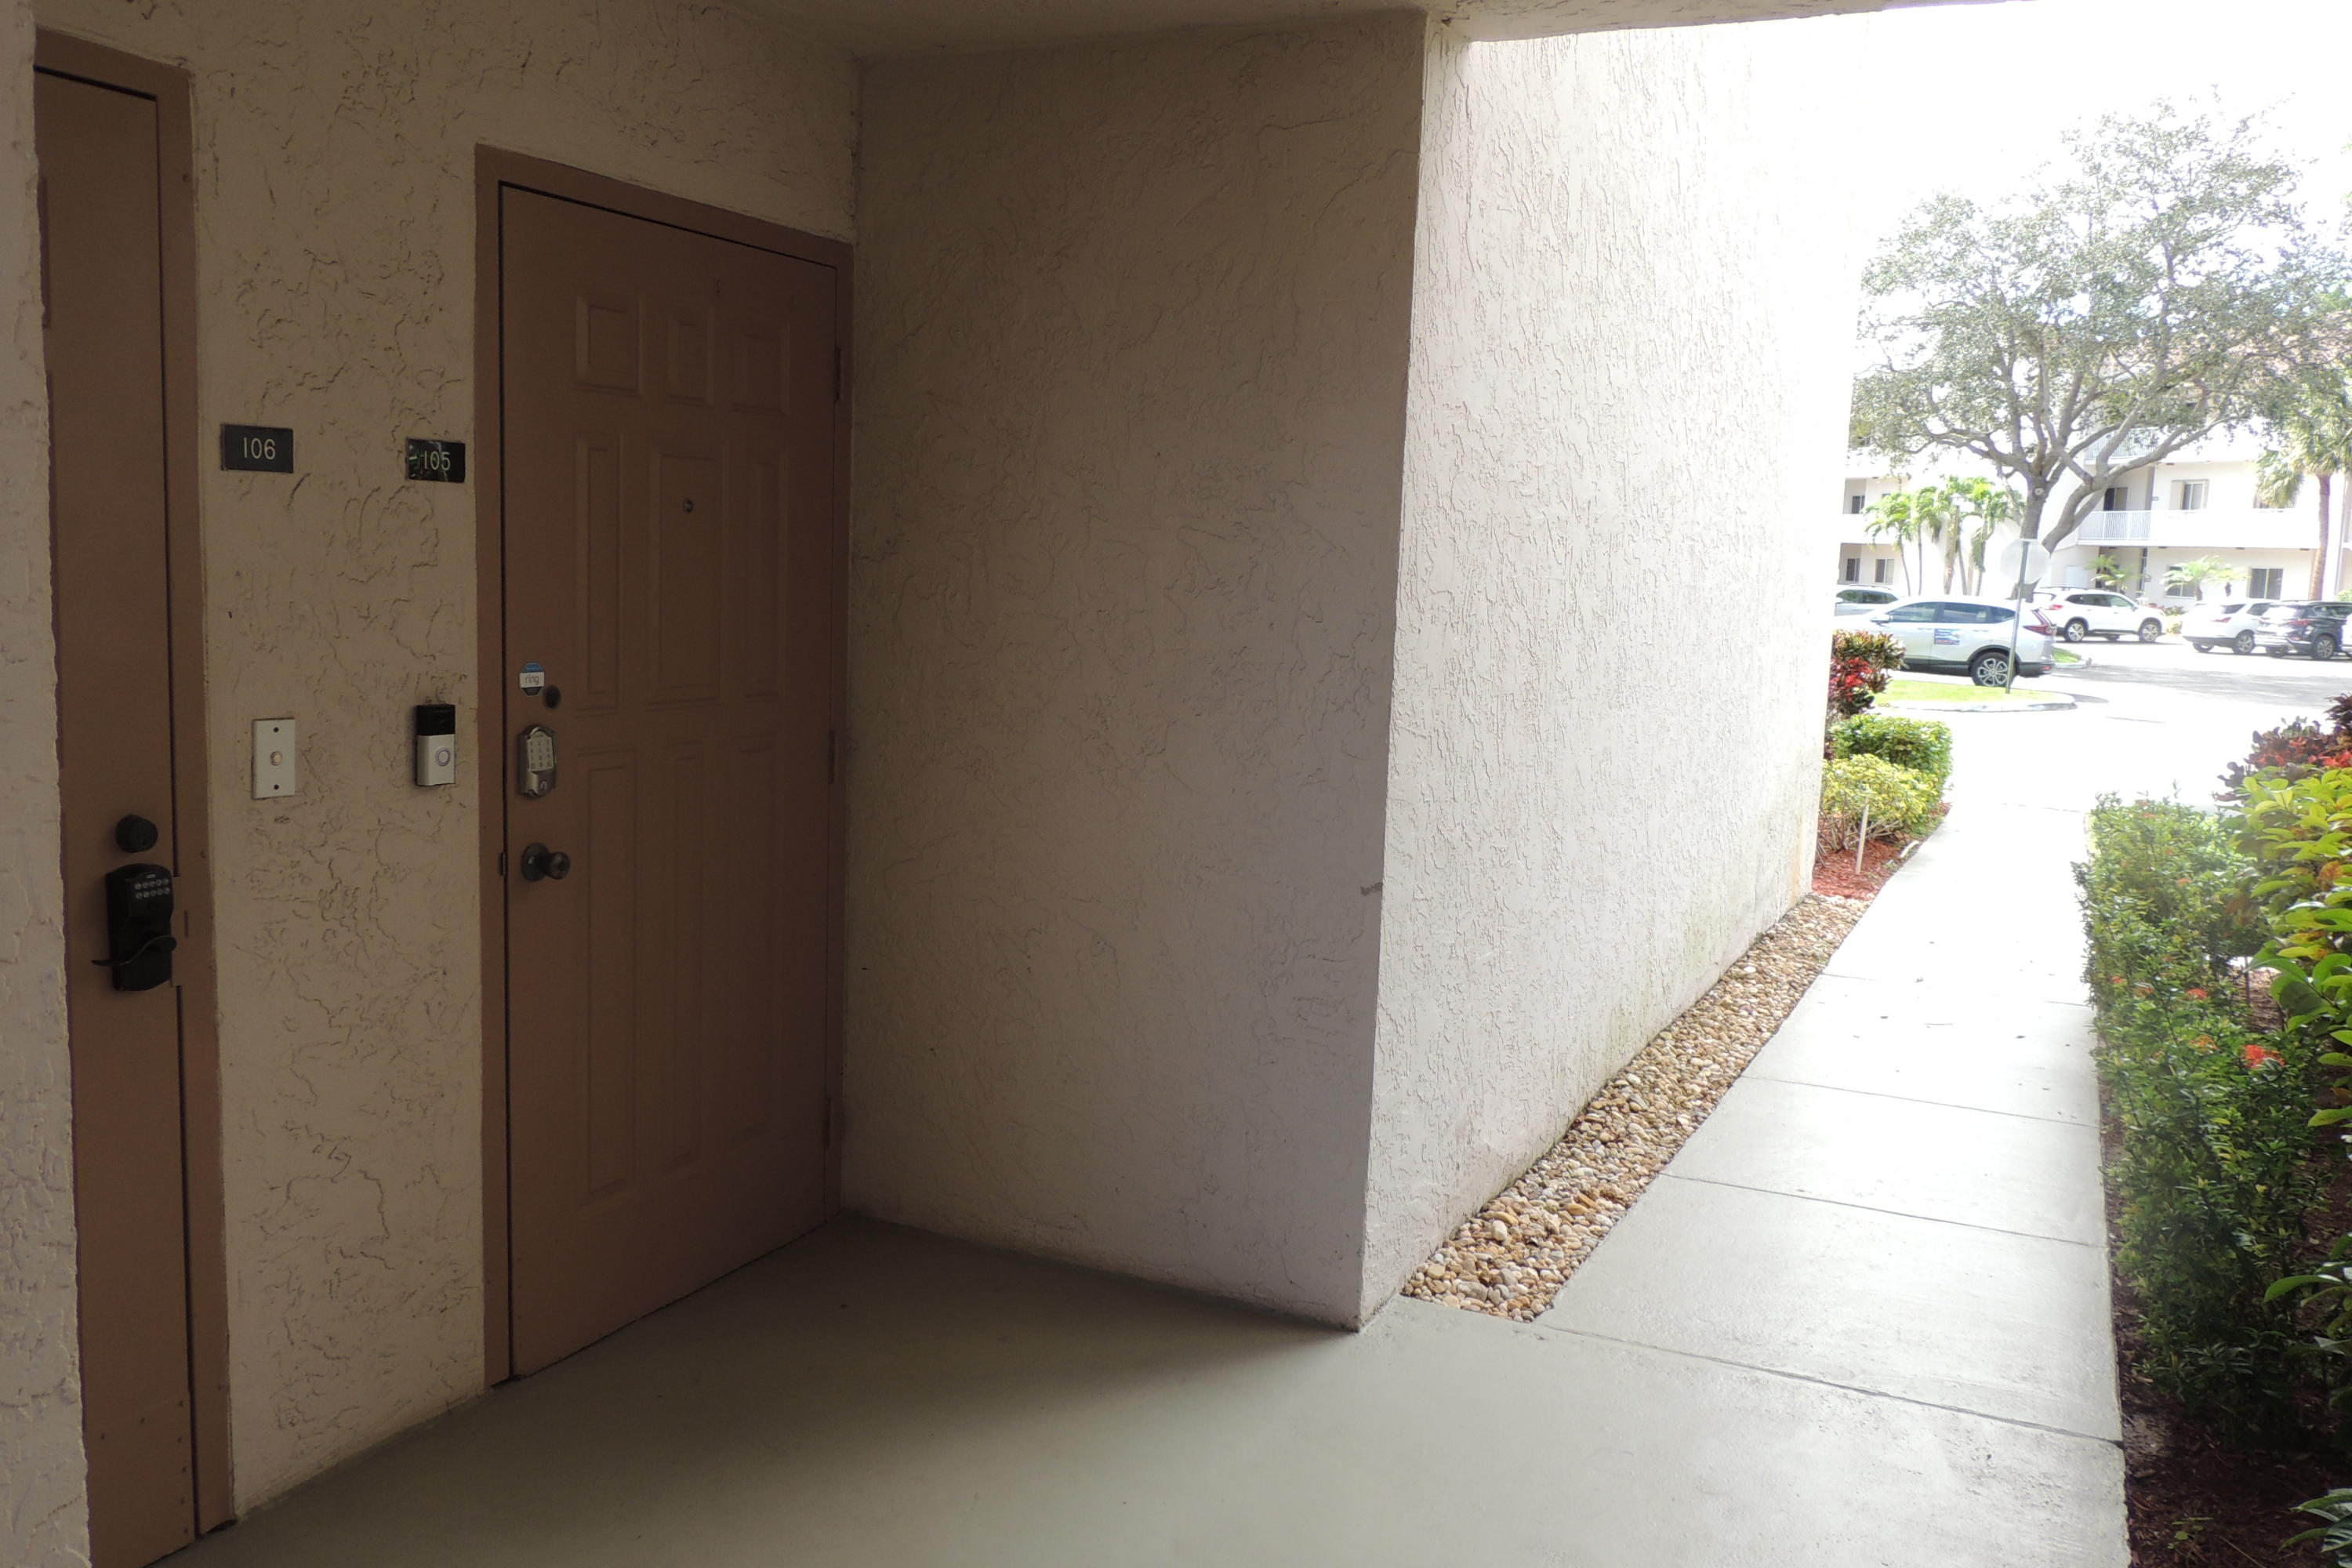 5068 Rose Hill Drive 106 Boynton Beach, FL 33437 small photo 56